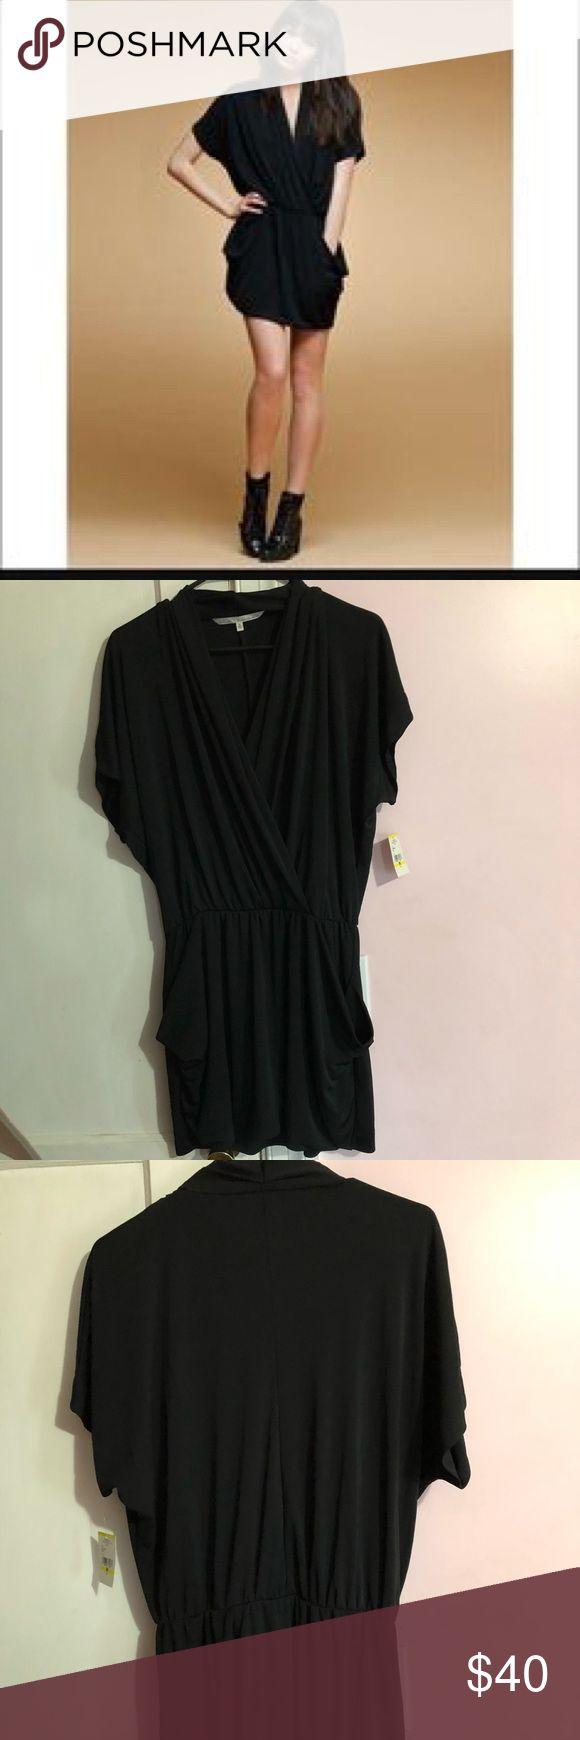 Rachel Roy 24 Hr Dress Rachel Roy 24 Hr dress is new with tags. Features a plunging neckline, flattering draping, and POCKETS! Size medium, stretchy fabric could also fit a large. Rachel Roy Dresses